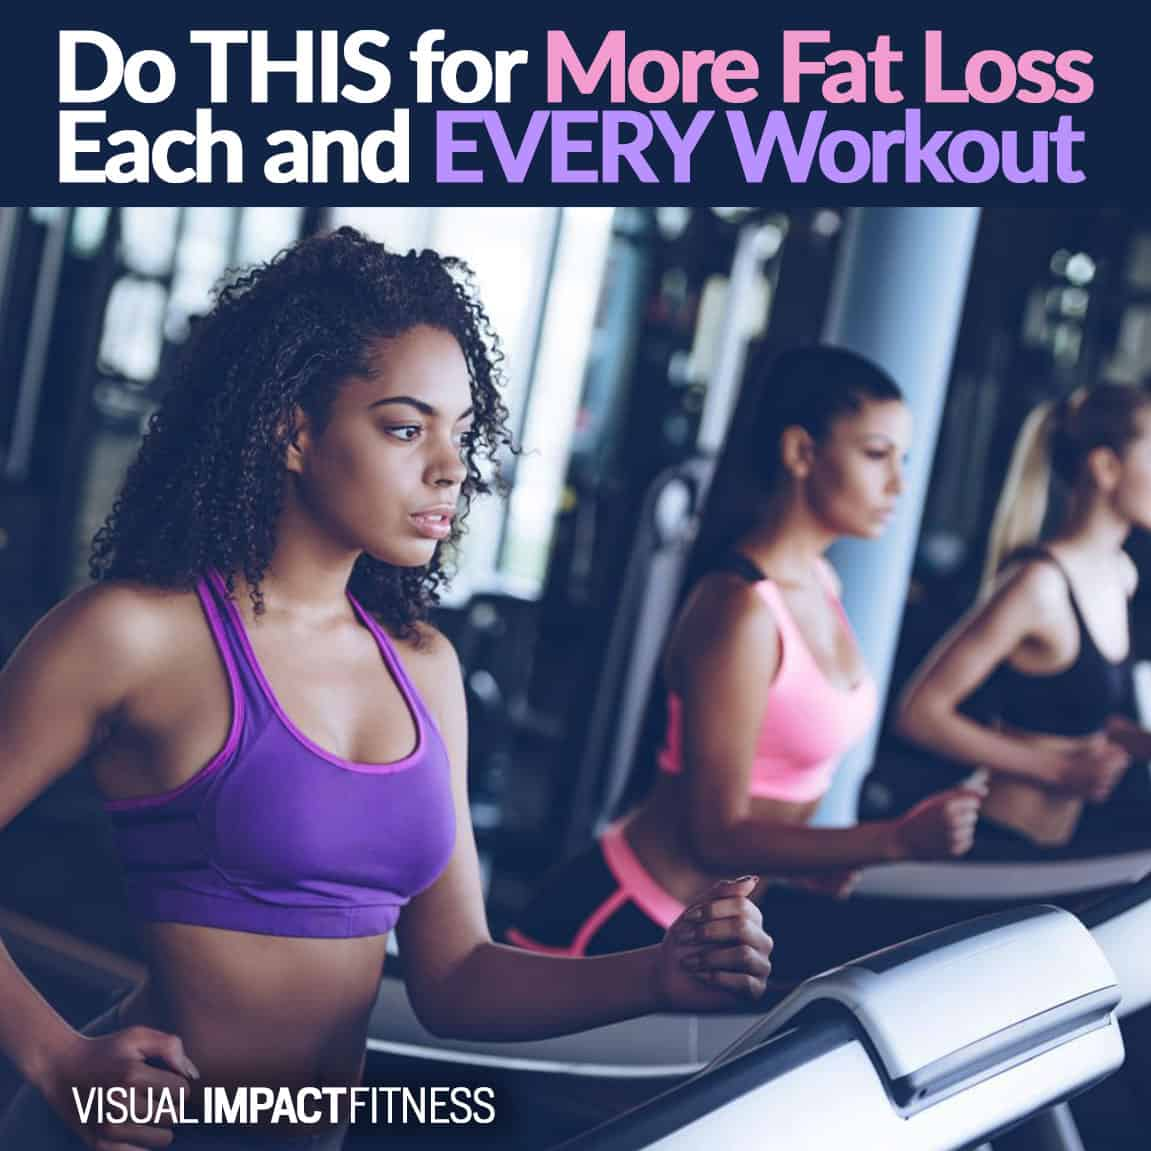 Do THIS for More Fat Loss Each and EVERY Workout